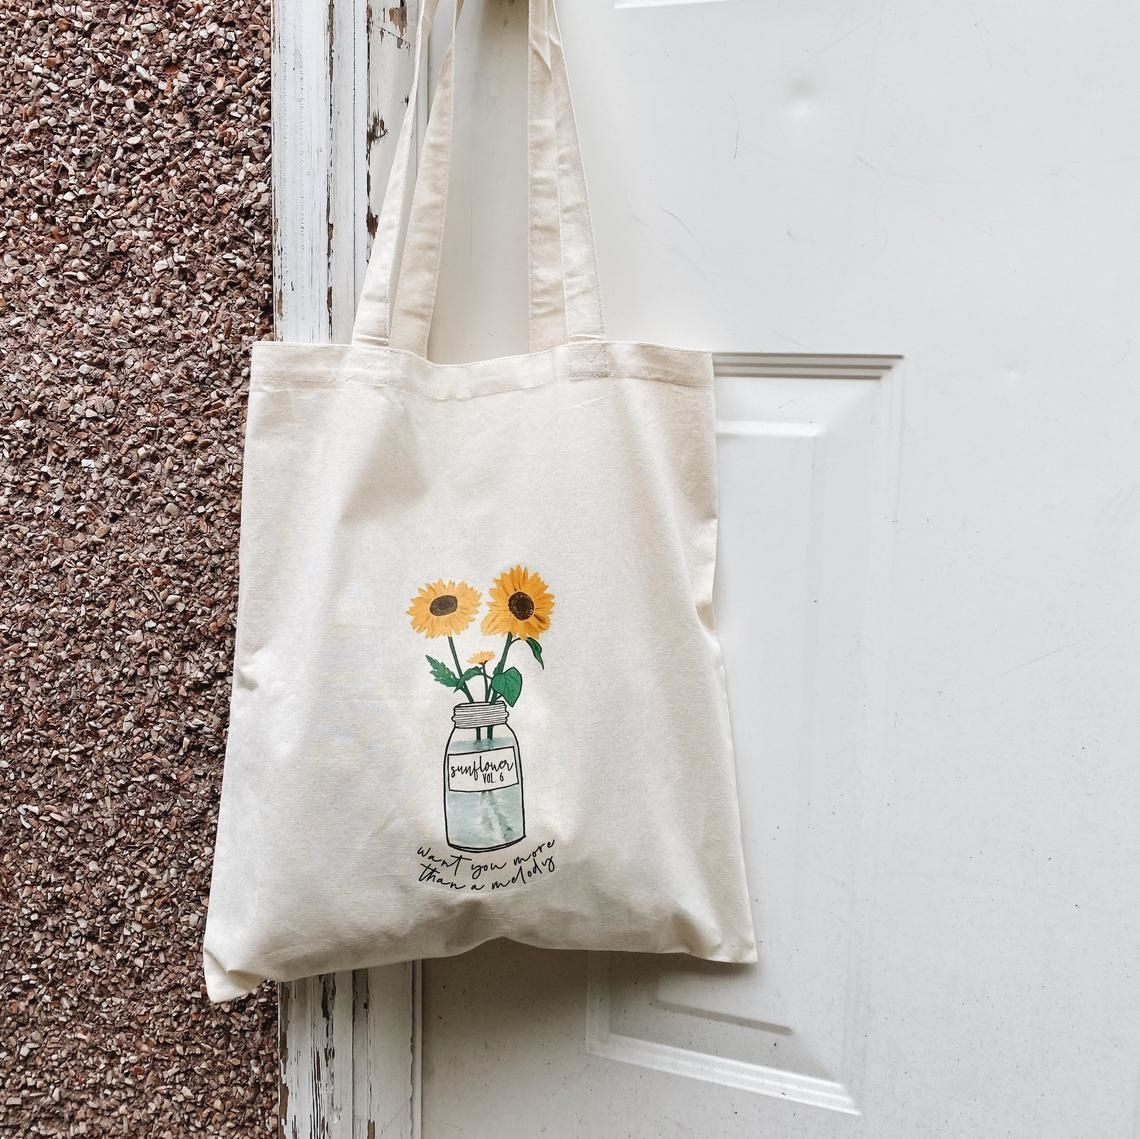 The tote bag hanging on a door handle